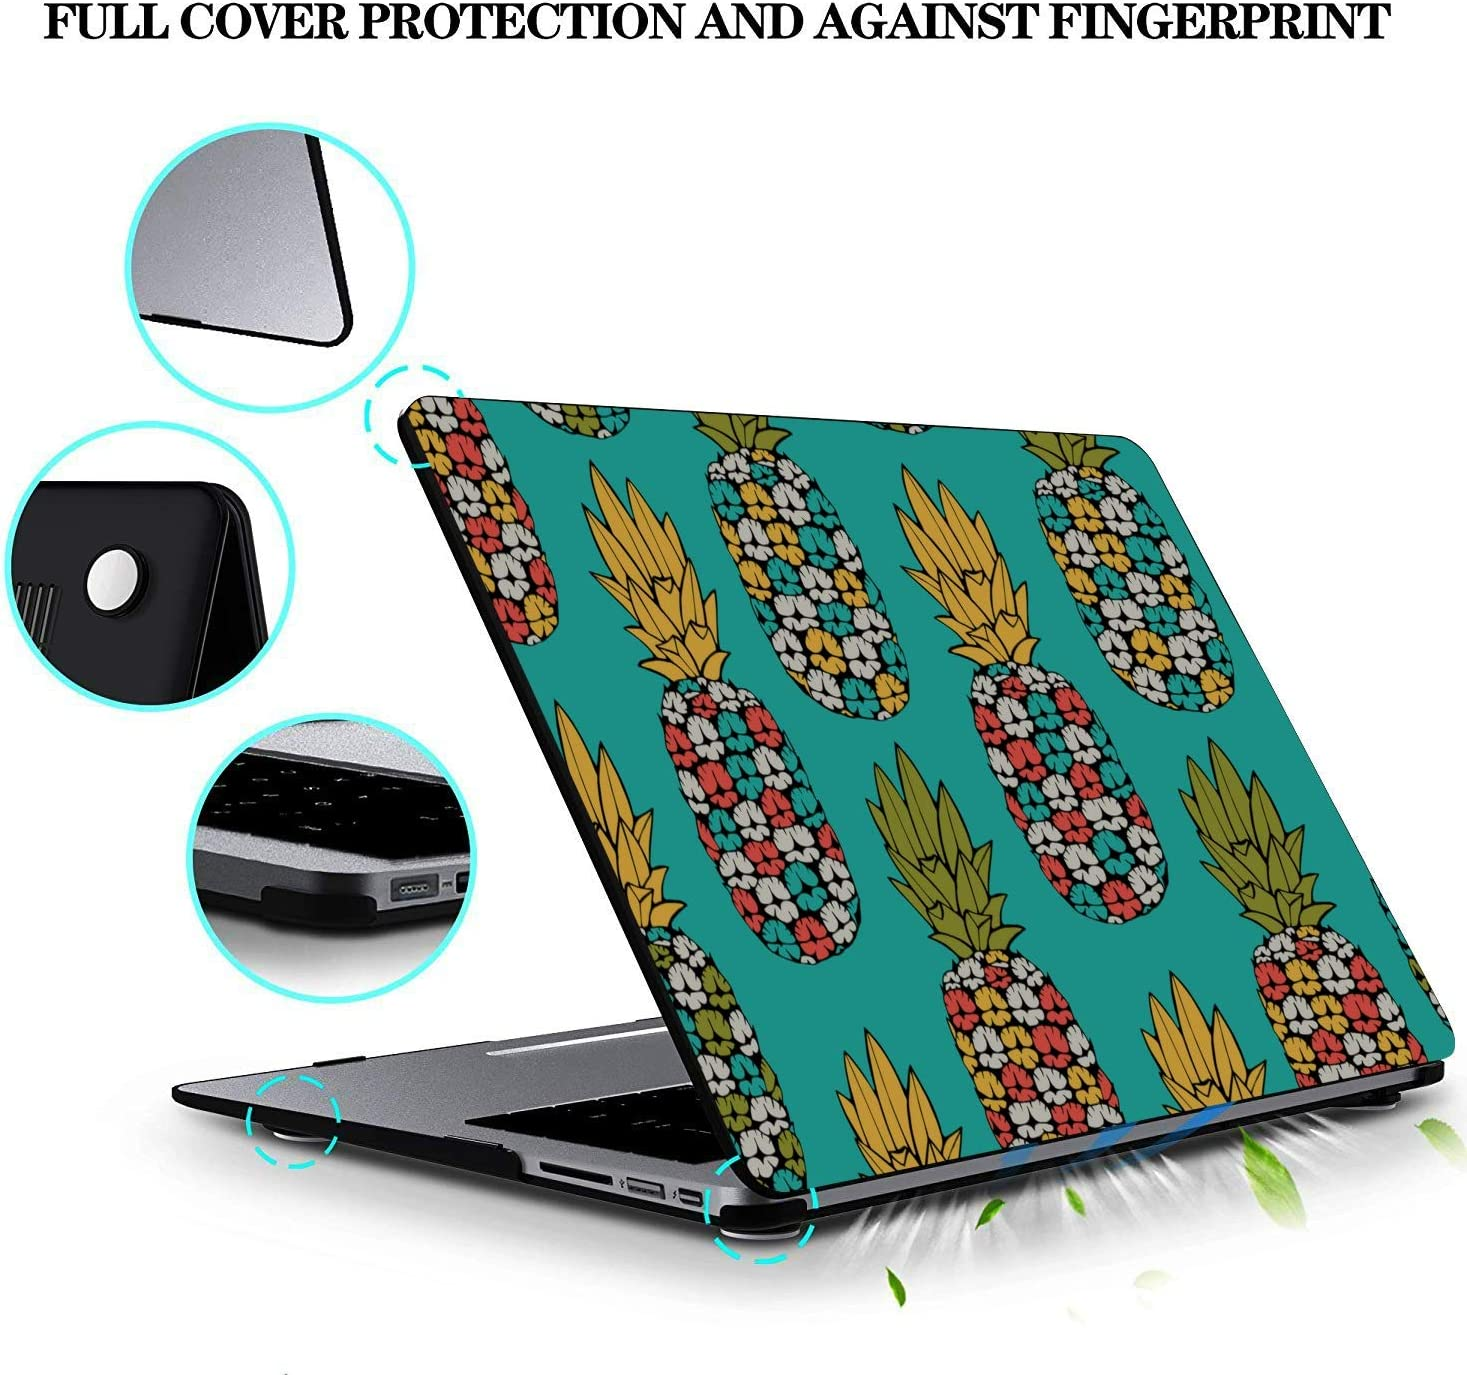 Mac Covers Summer Fashion Sweet Fruit Pineapple Plastic Hard Shell Compatible Mac Air 11 Pro 13 15 13 MacBook Pro Case Protection for MacBook 2016-2019 Version